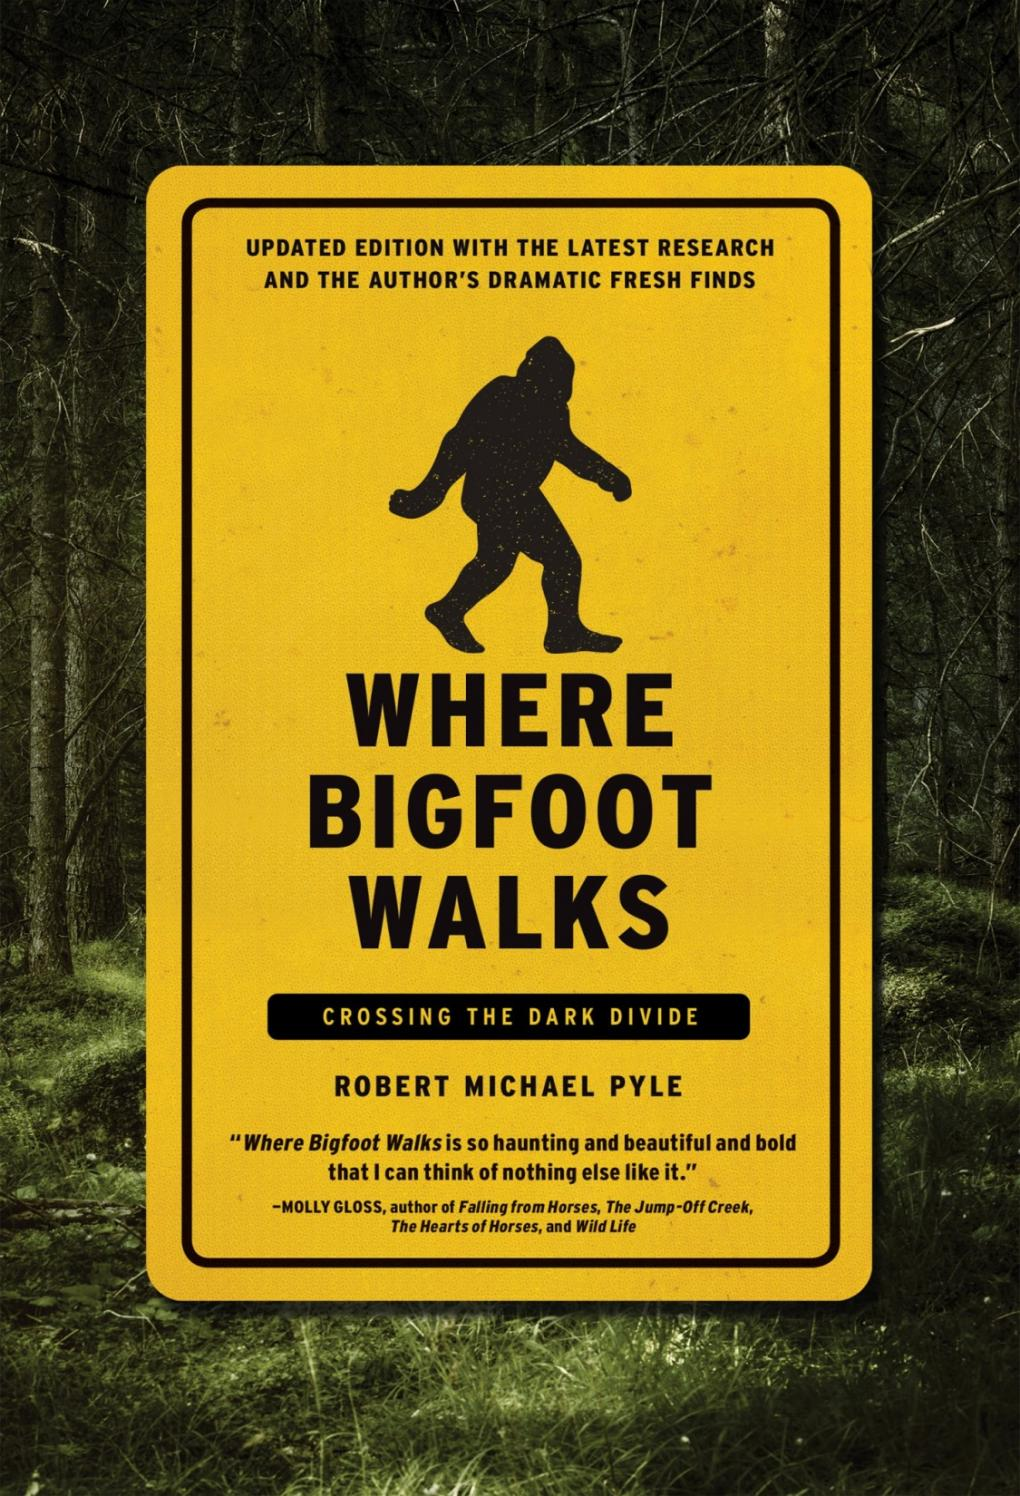 cd4af5a26163 Where Bigfoot Walks - Robert Michael Pyle by mach4C - issuu